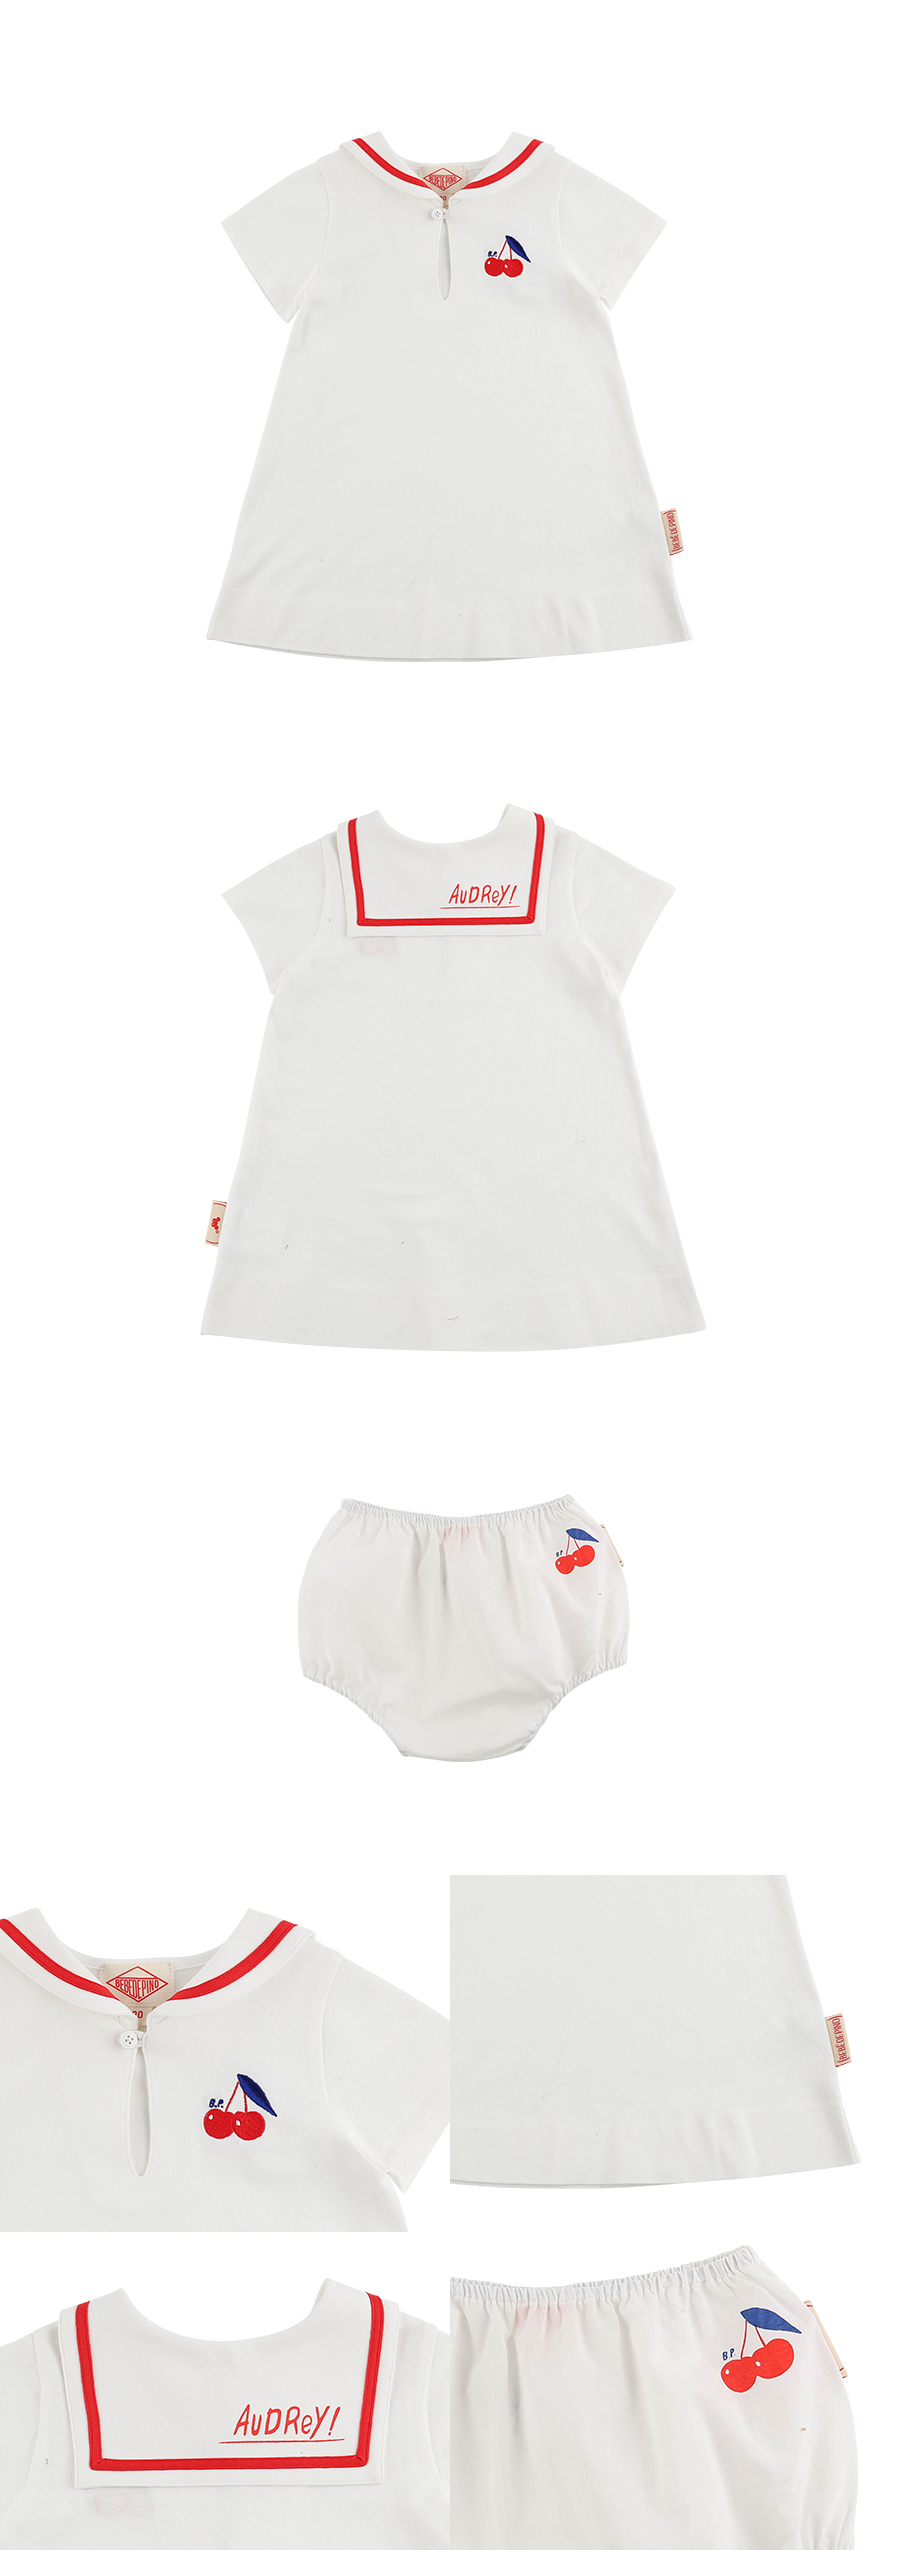 Cherry baby sailor pique dress set 상세 이미지